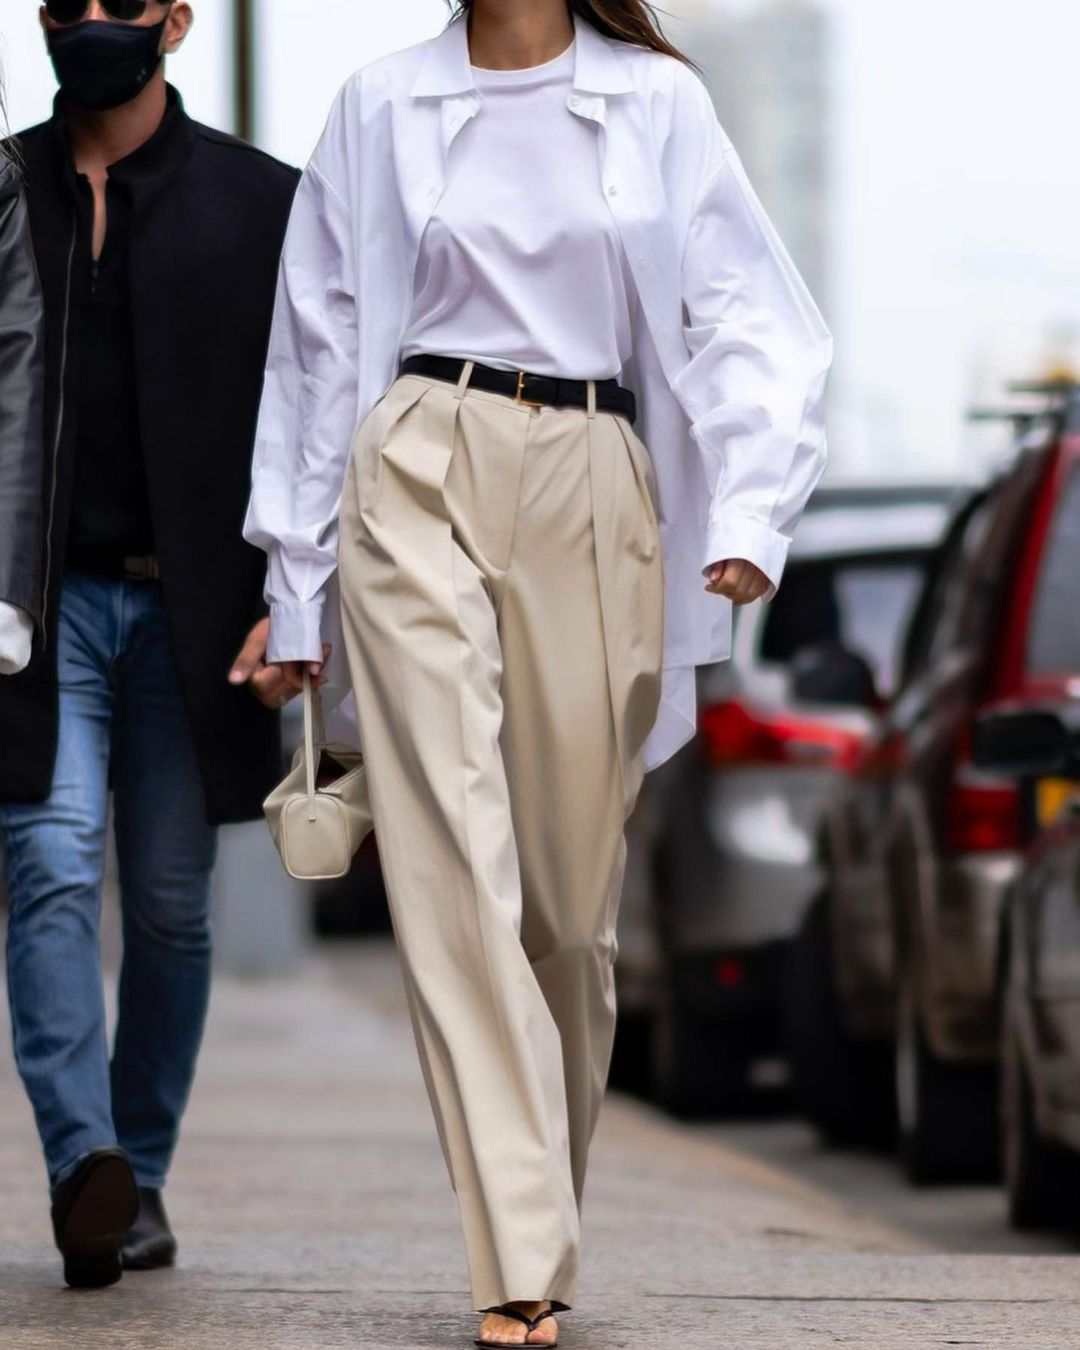 Pleated Pants are the Latest '80s Trend to Make a Comeback